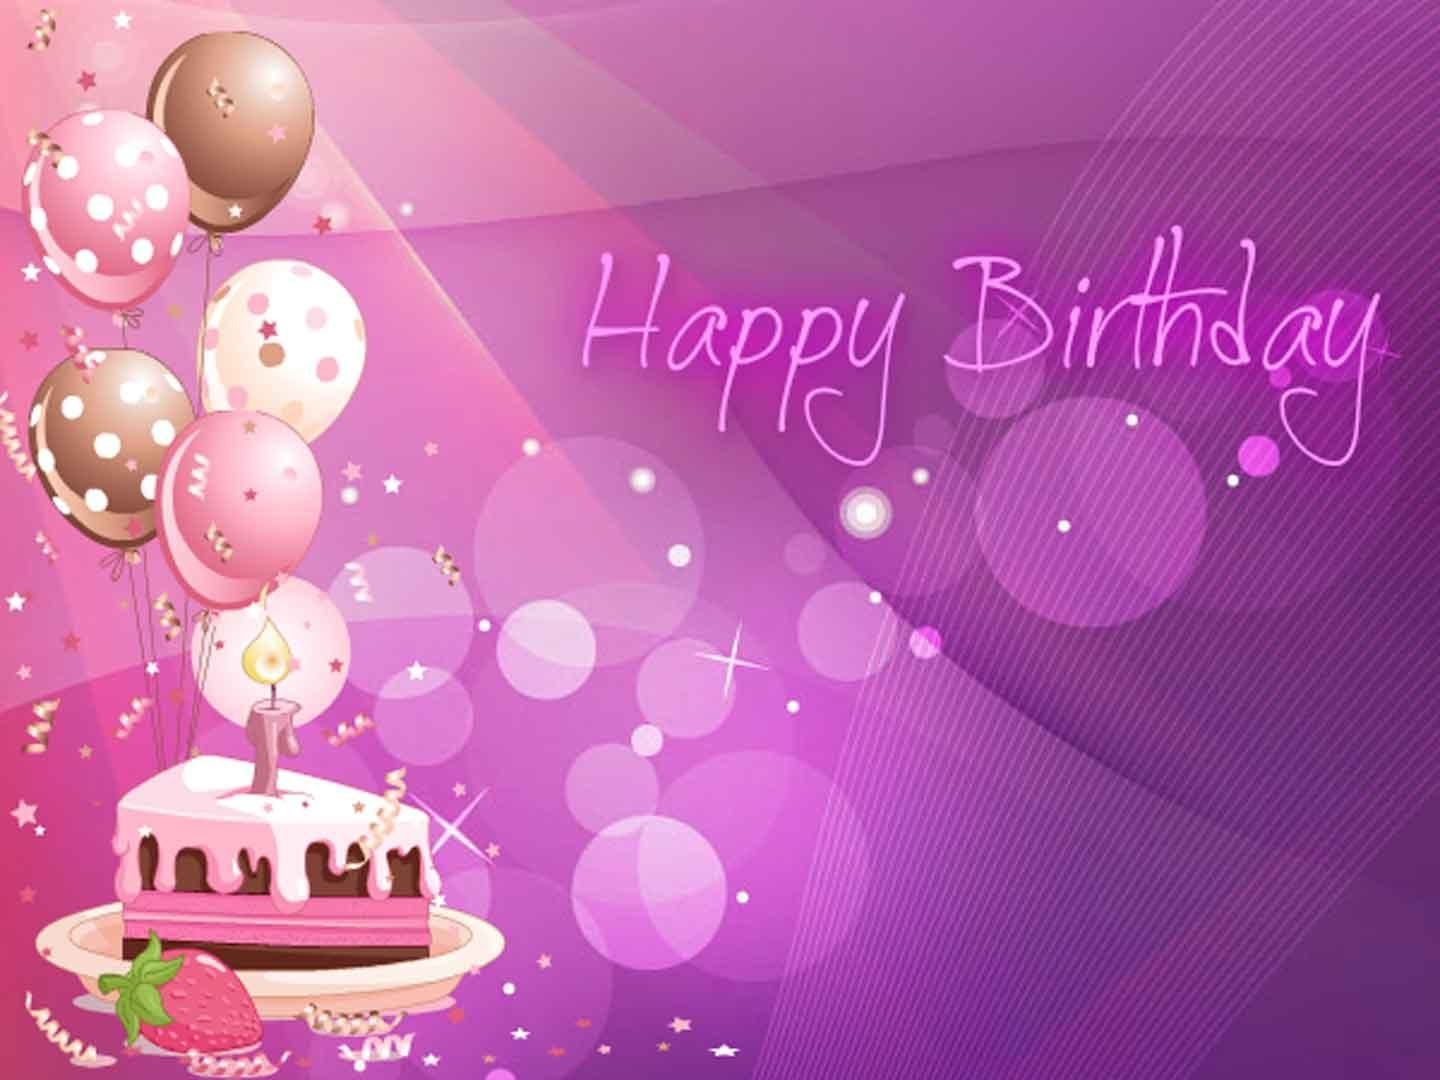 Bday background images - Video Background For Birthday Youtube Birthday Background